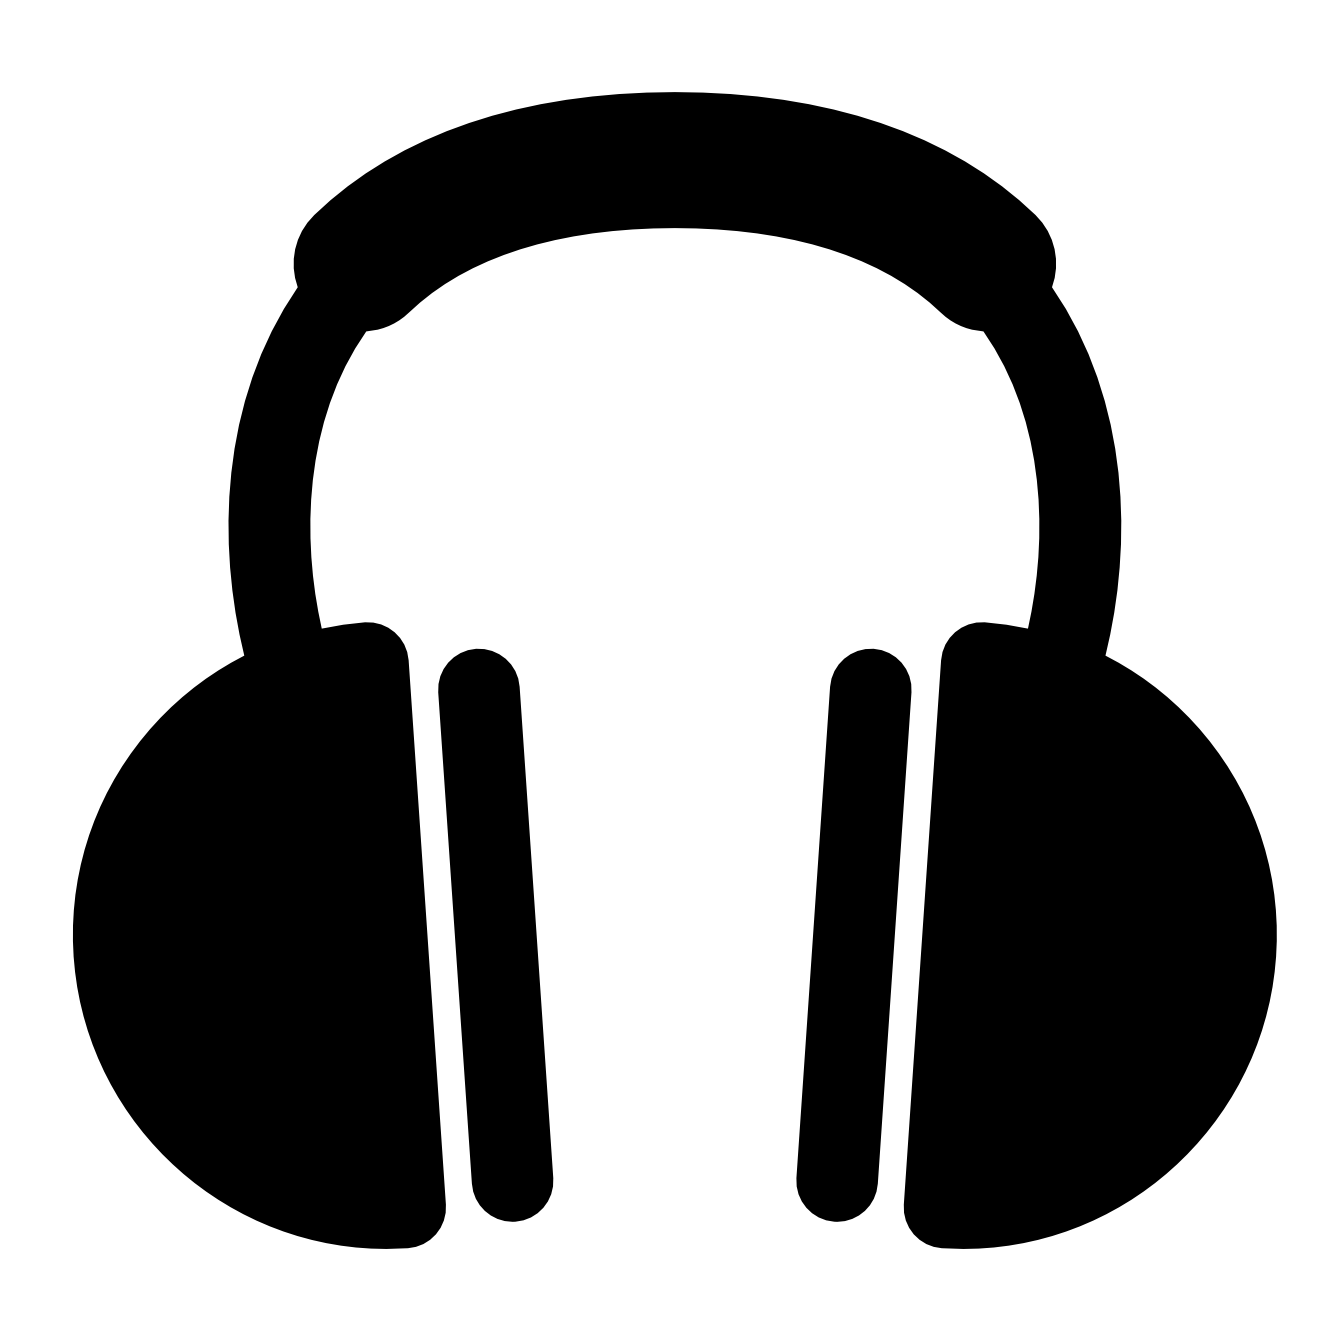 Download Free Vector Headphones Png image #20159